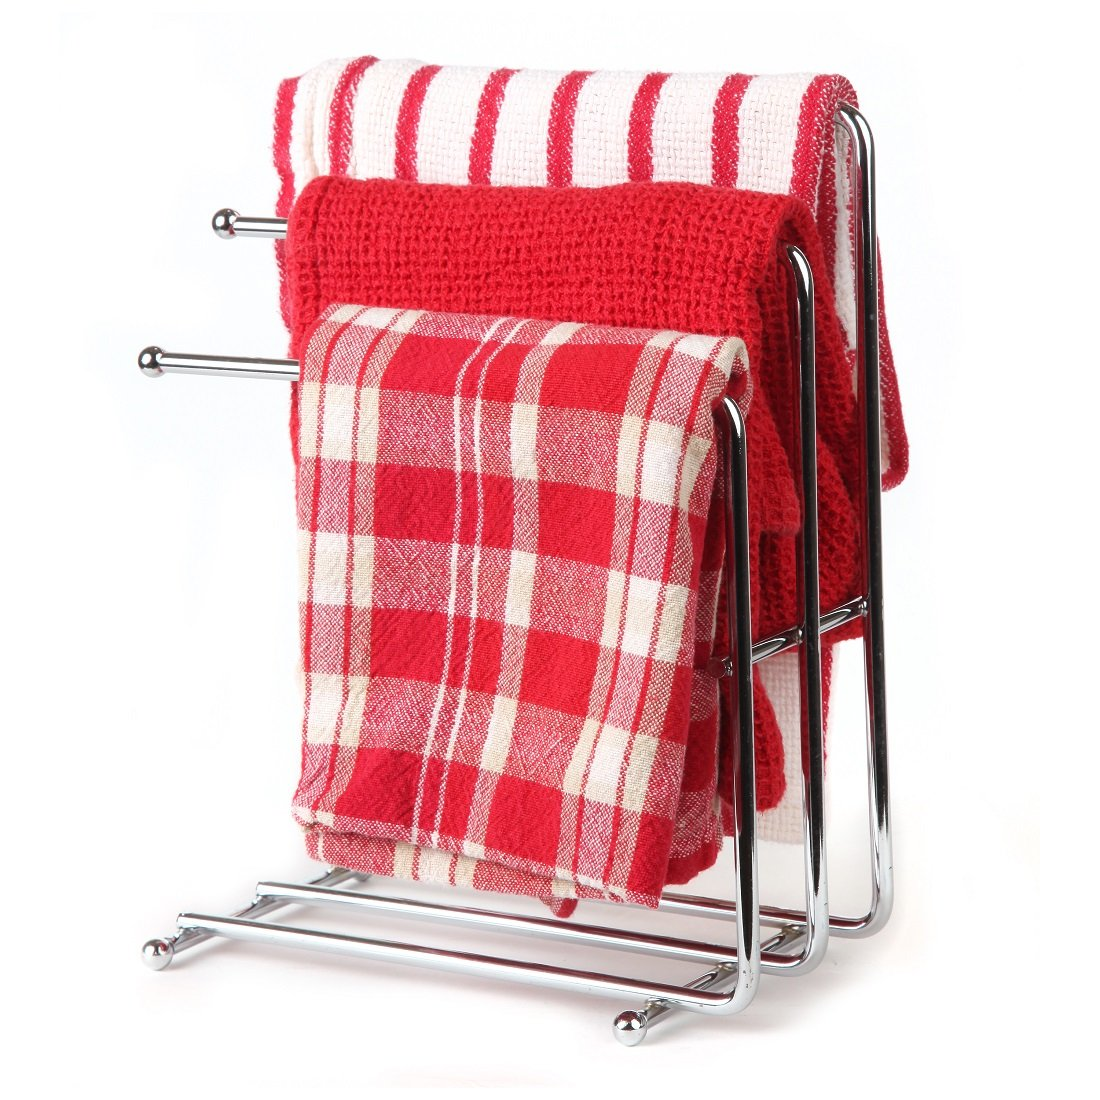 Home-X Free Standing Towel Rack, Space Saving Kitchen Towel & Hand Towel Rack Holds 3 Towels at Once, Polished Chrome Finish & Design Looks Great in Kitchens & Bathrooms (Towels Not Included)